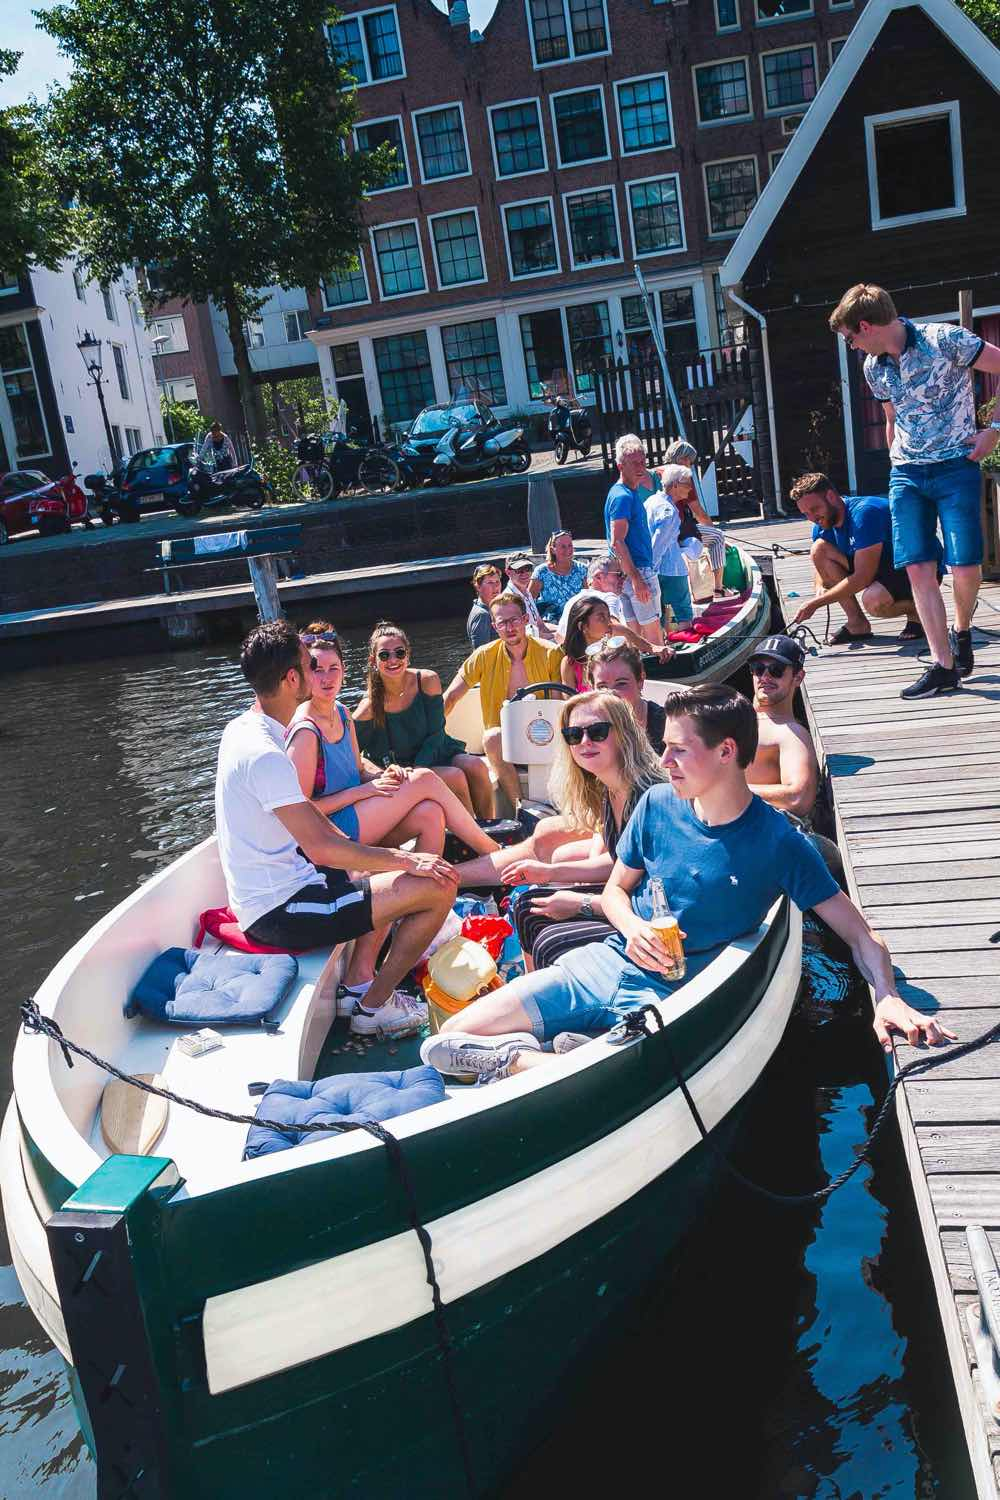 Boat rental Amsterdam canal